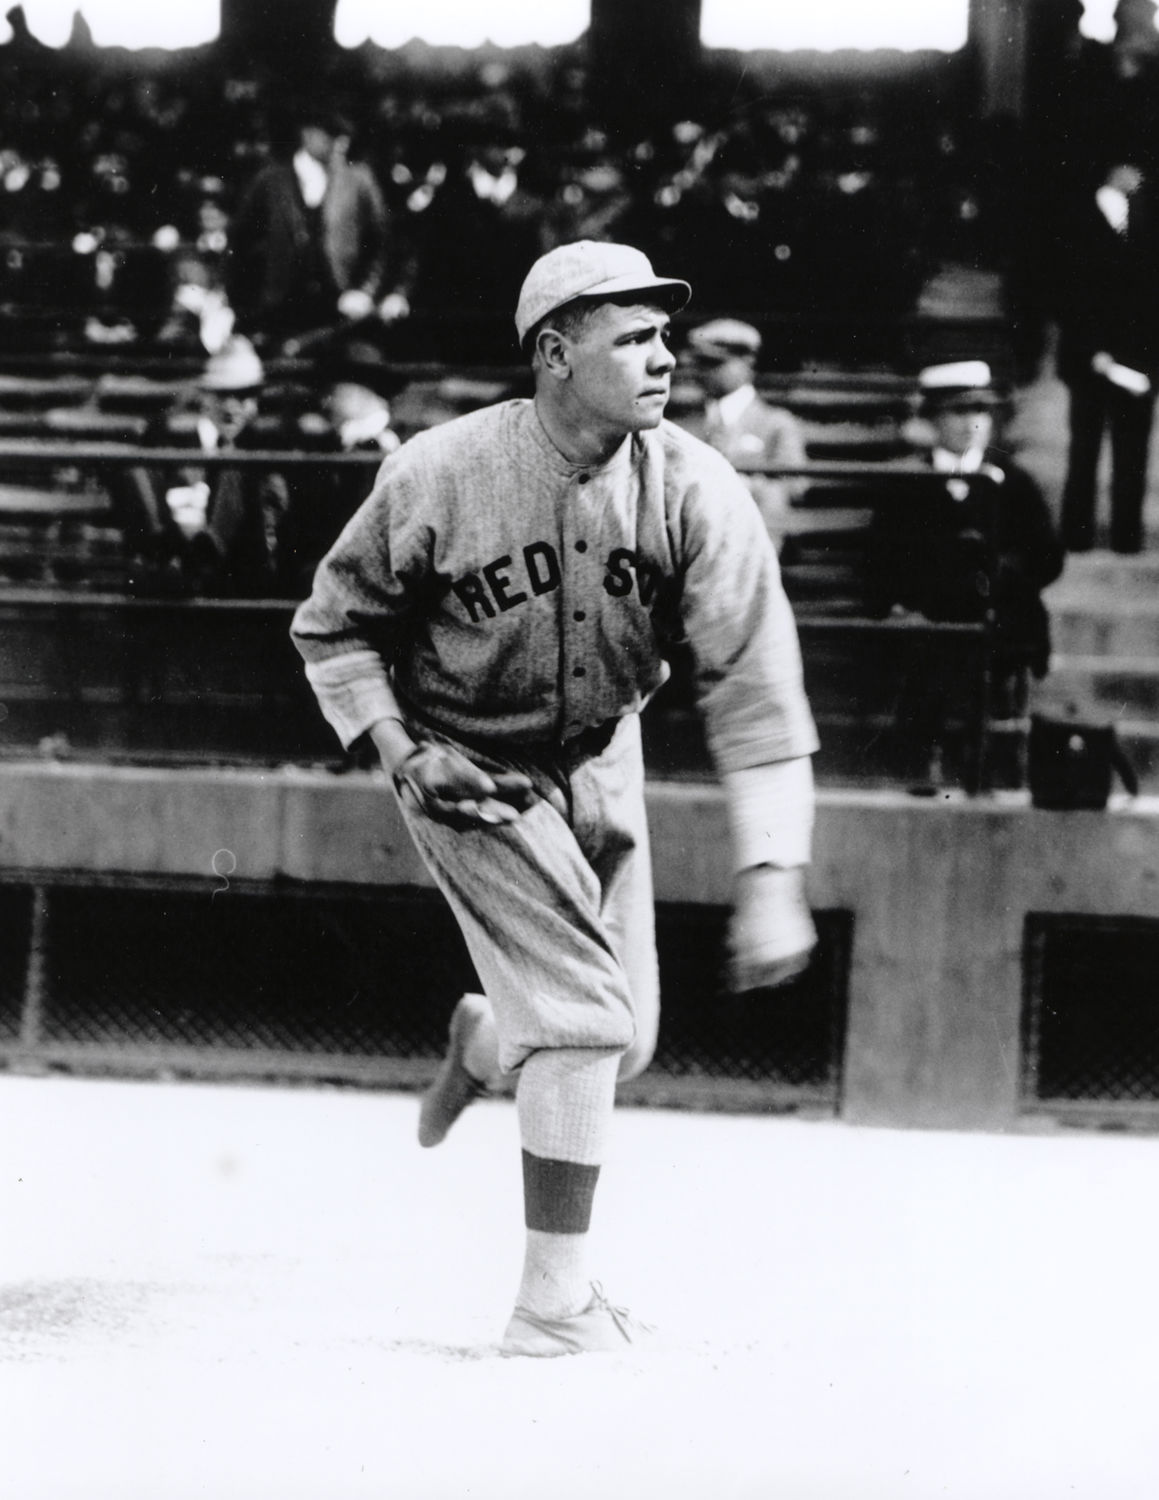 johnson walter baseball hall of fame babe ruth of the red sox out duels walter johnson 1 0 in 13 innings